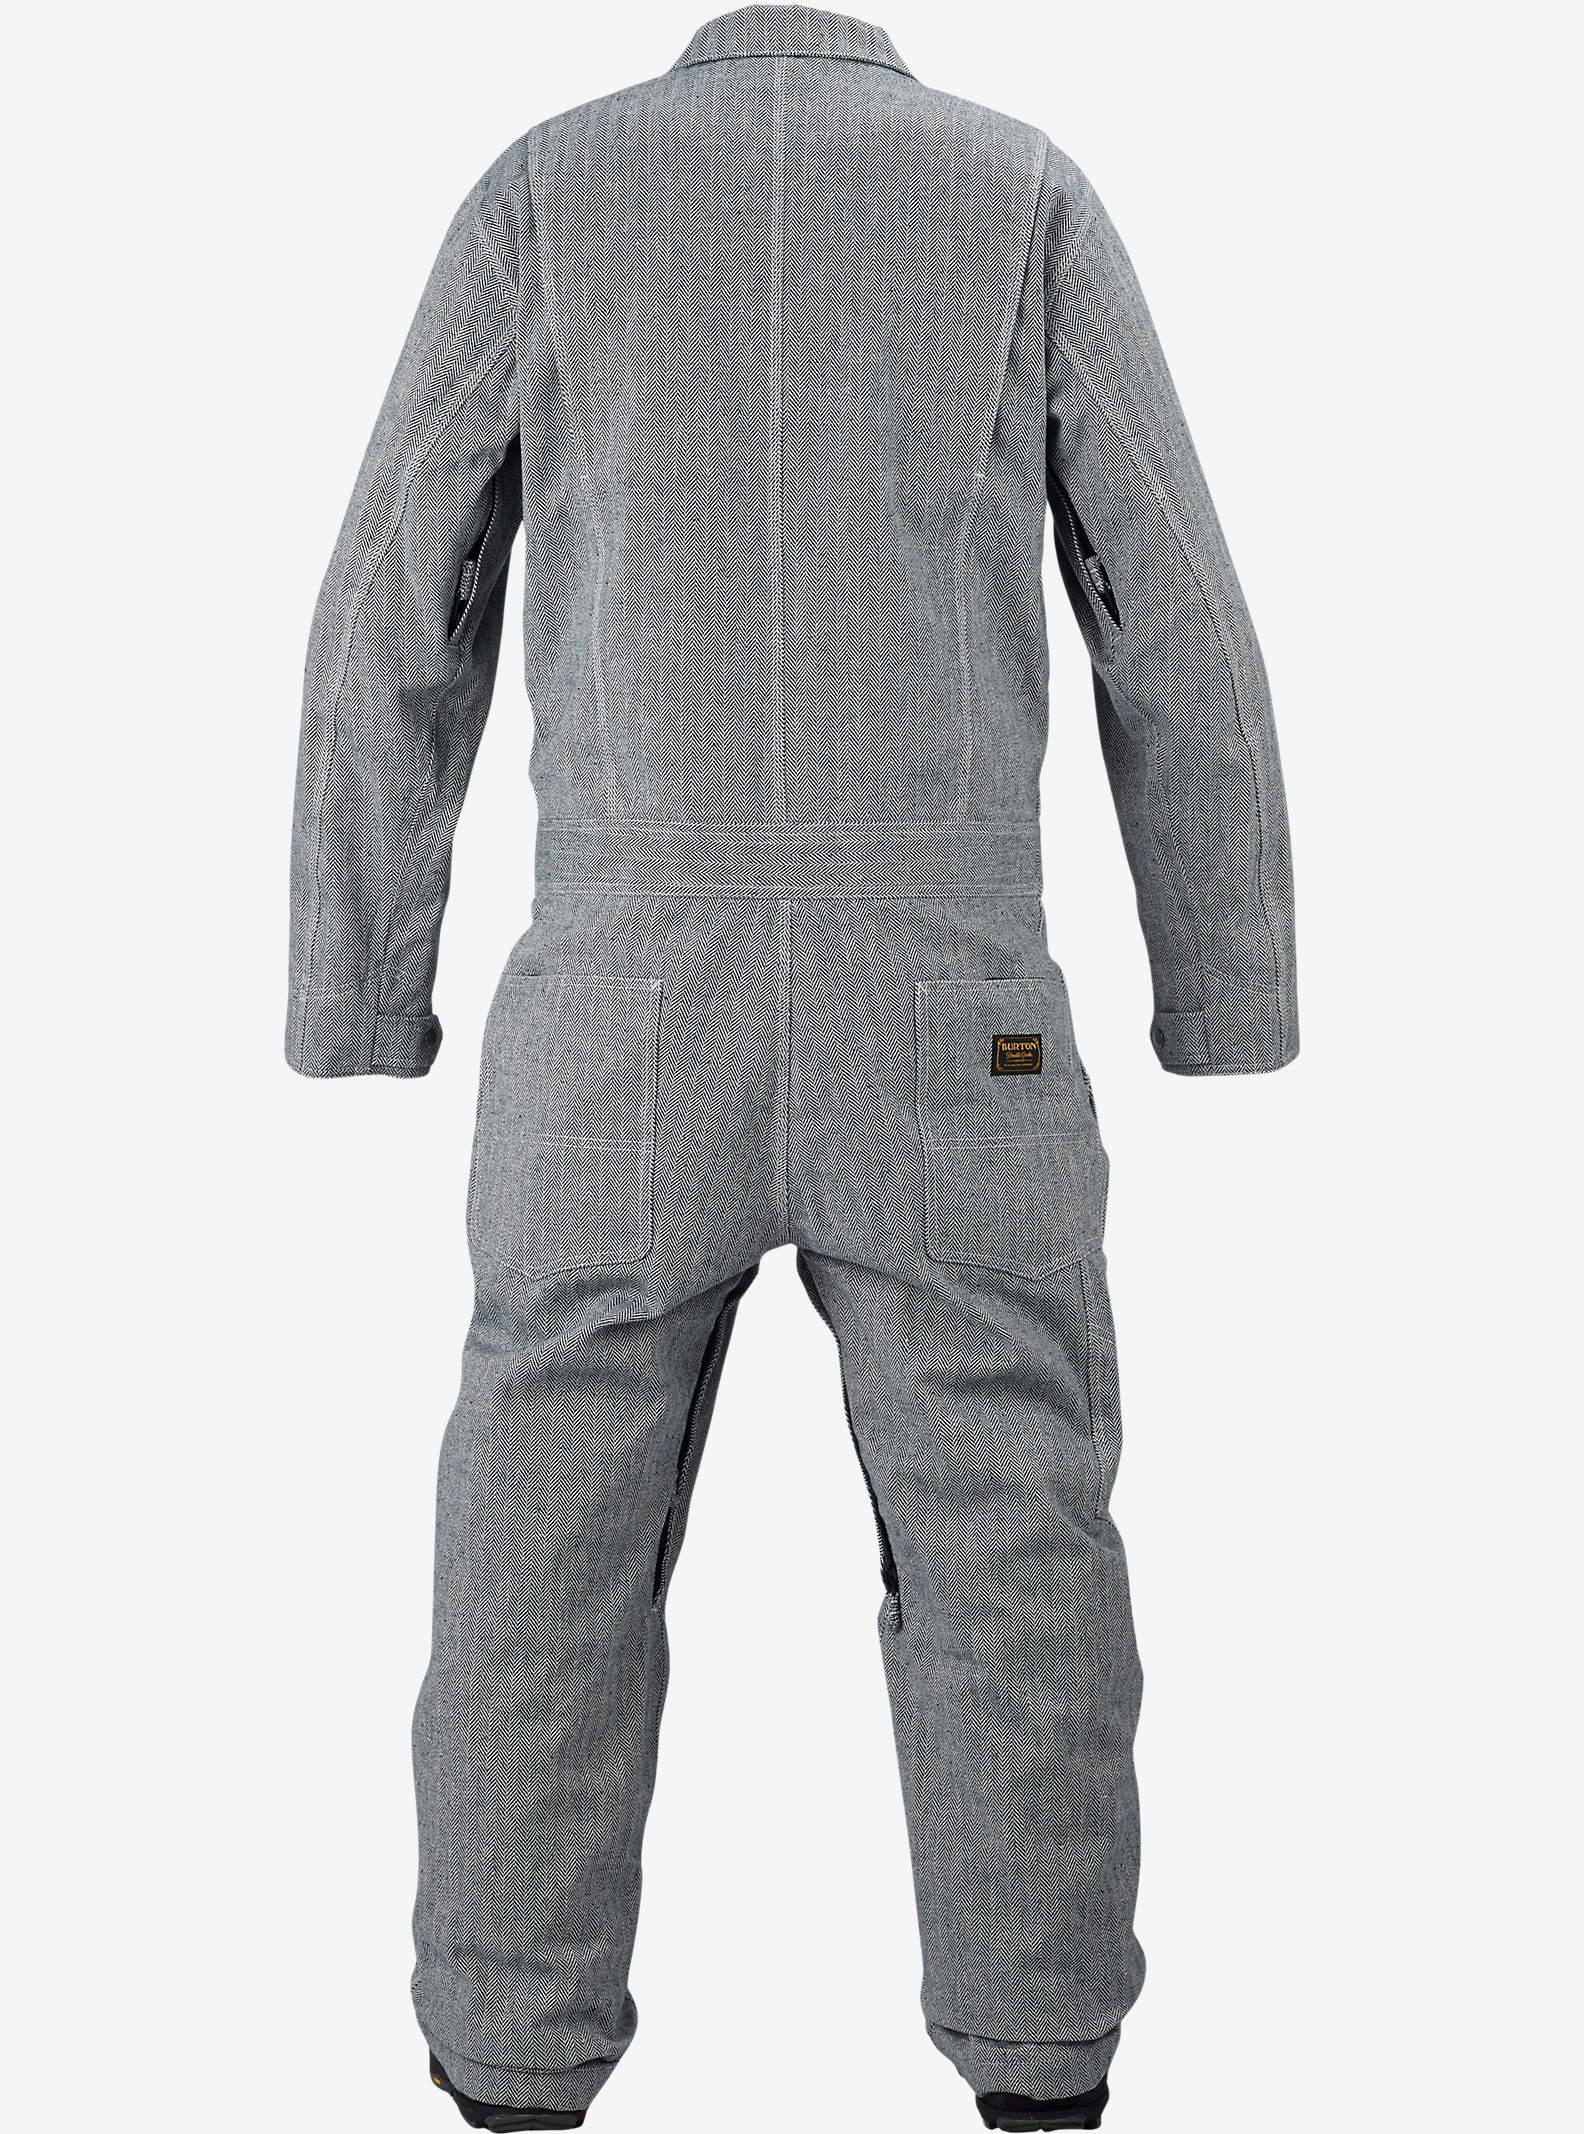 Burton Irwin Coverall shown in Indigo Herringbone